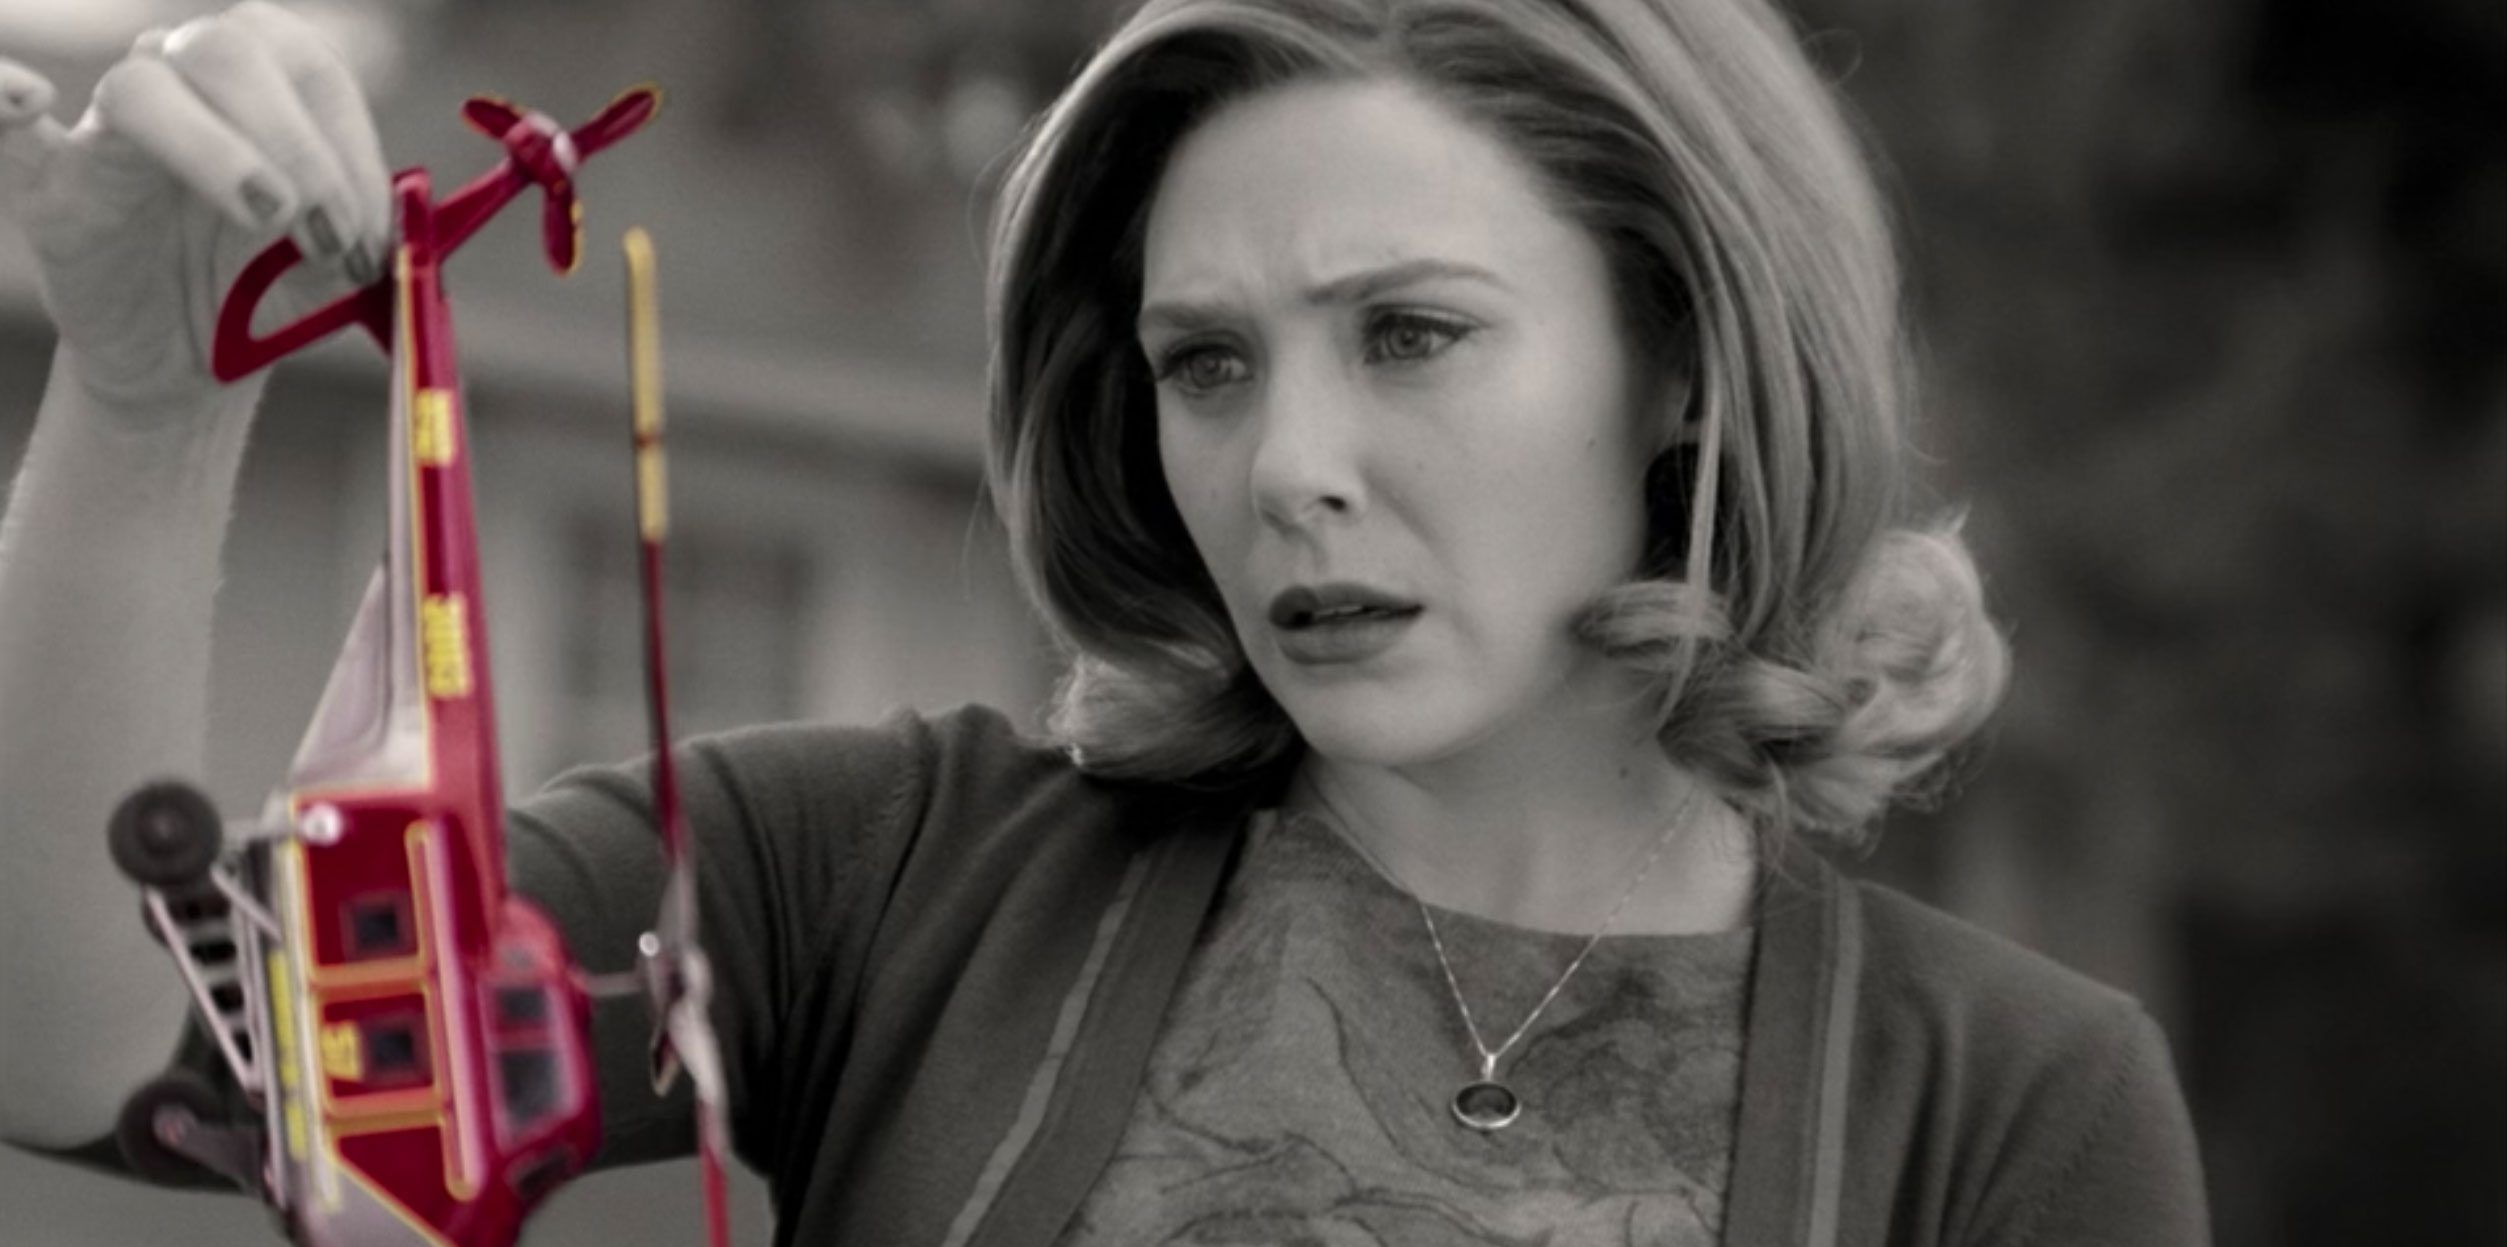 WandaVision: Elizabeth Olsen on New Version of Wanda & Use of Tension